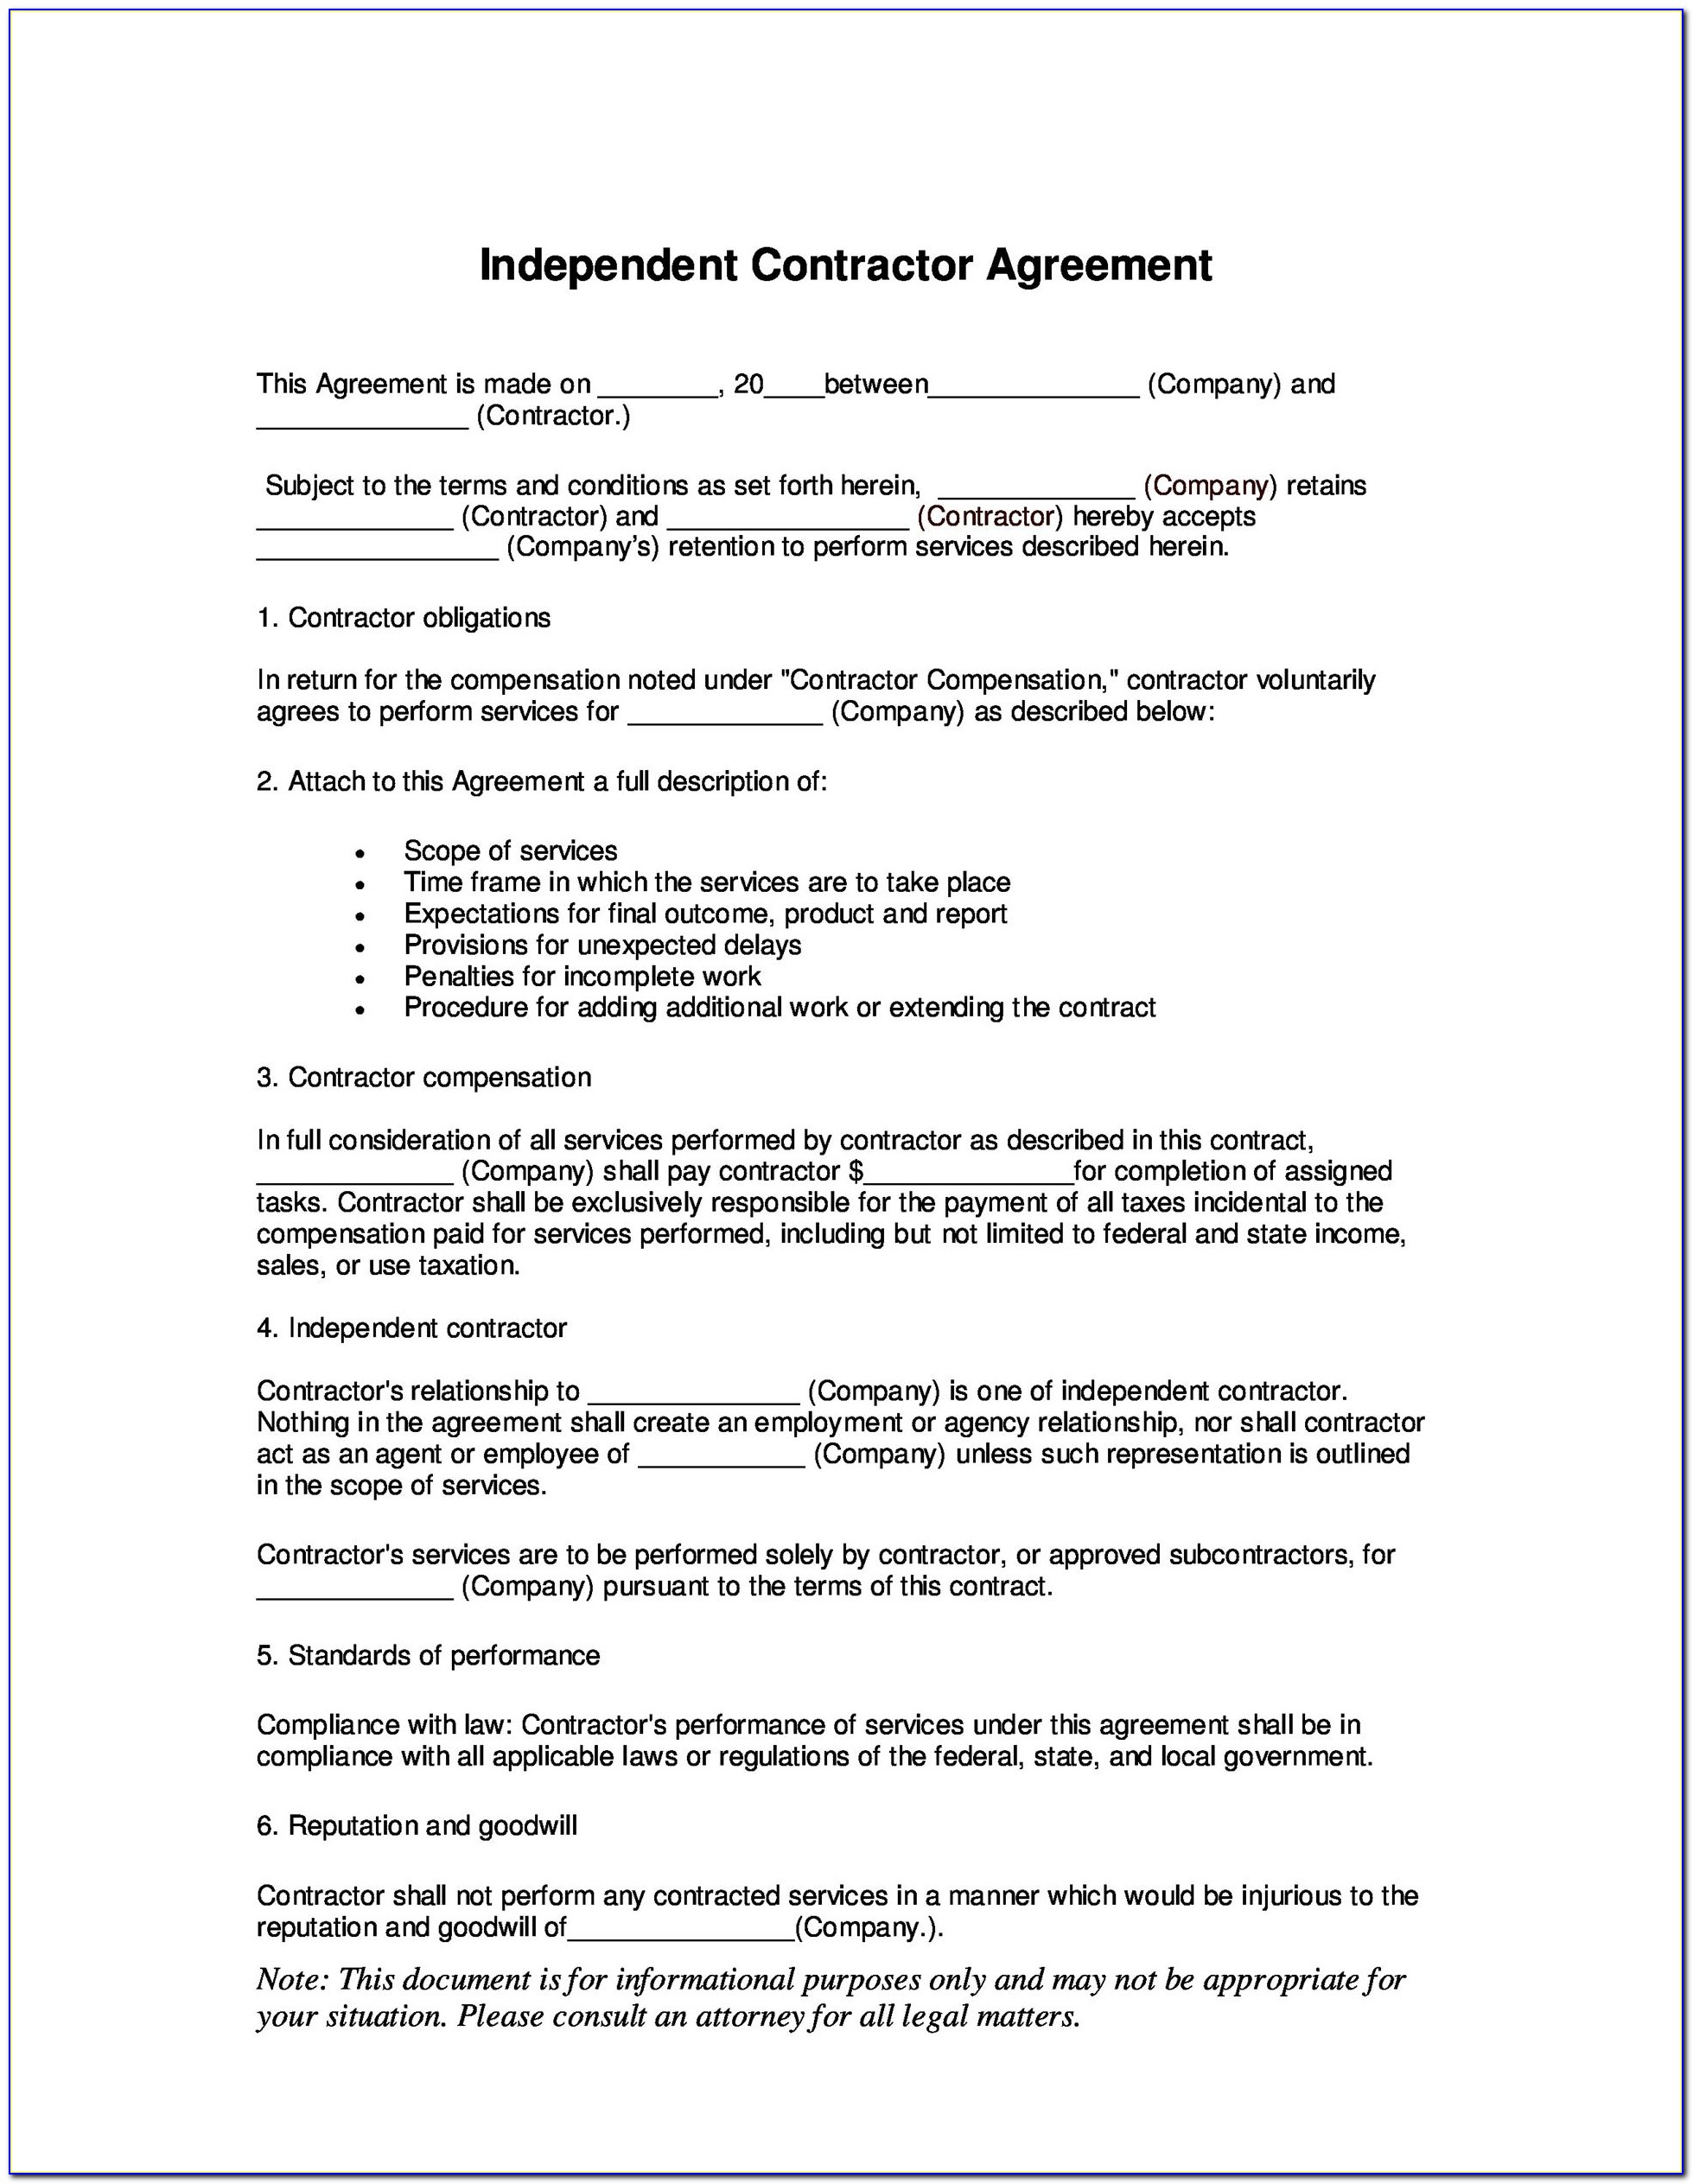 Independent Contractor Agreement Template Uk Free